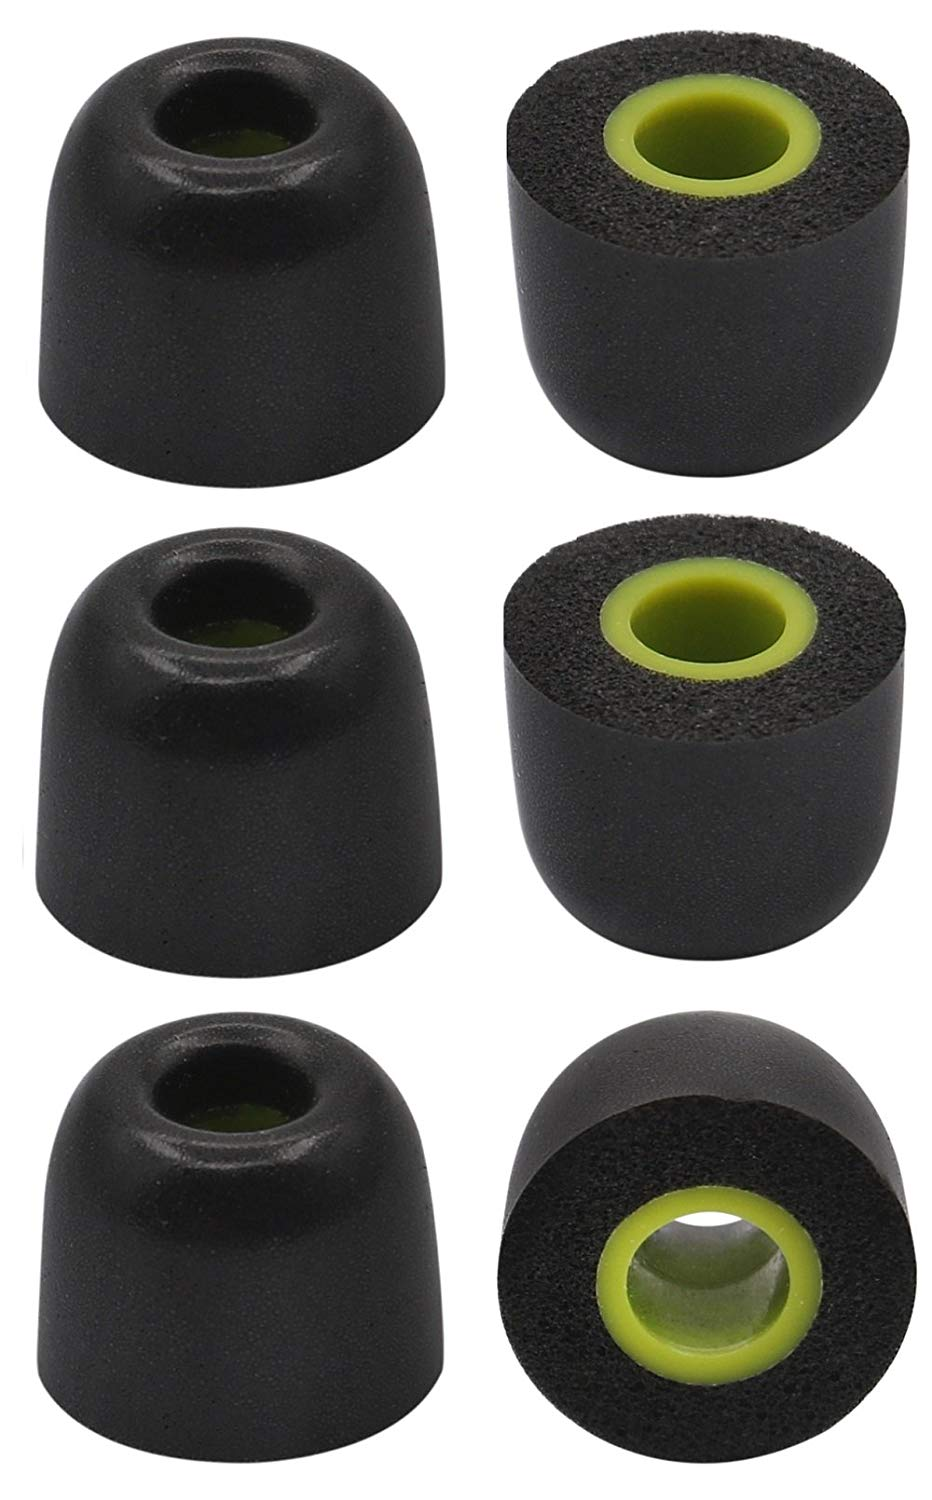 153b402708f Get Quotations · JNSA 6PCS Replacement Earbud Tips NoiseIsolation Memory  Foam Ear Tips M Size for Jaybird X2 Jaybird